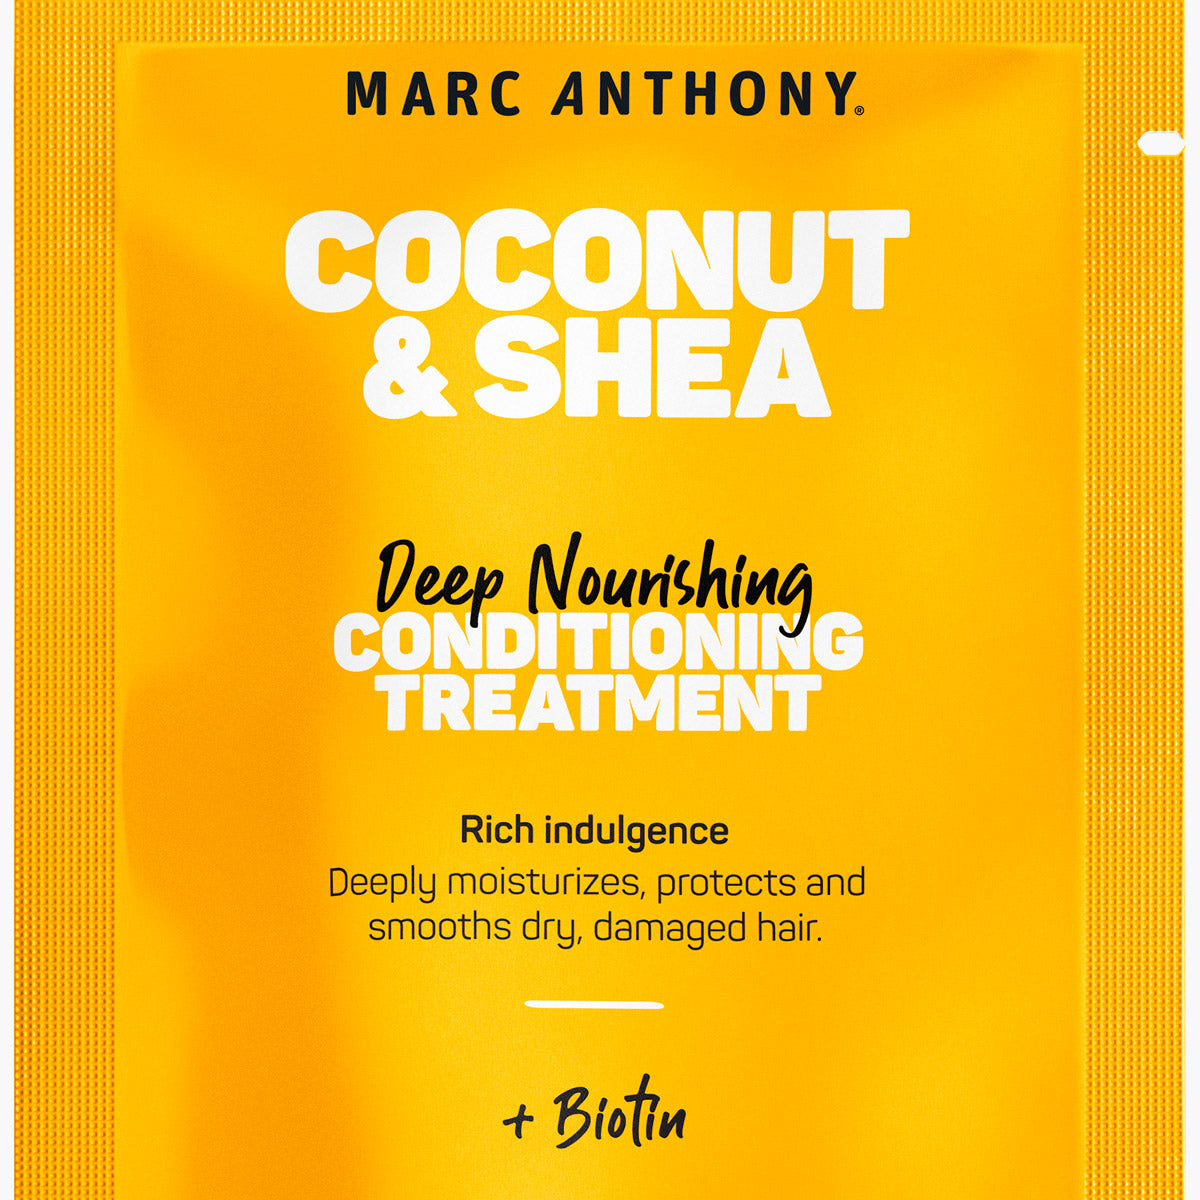 Coconut & Shea <br> Deep Nourishing Conditioning Treatment